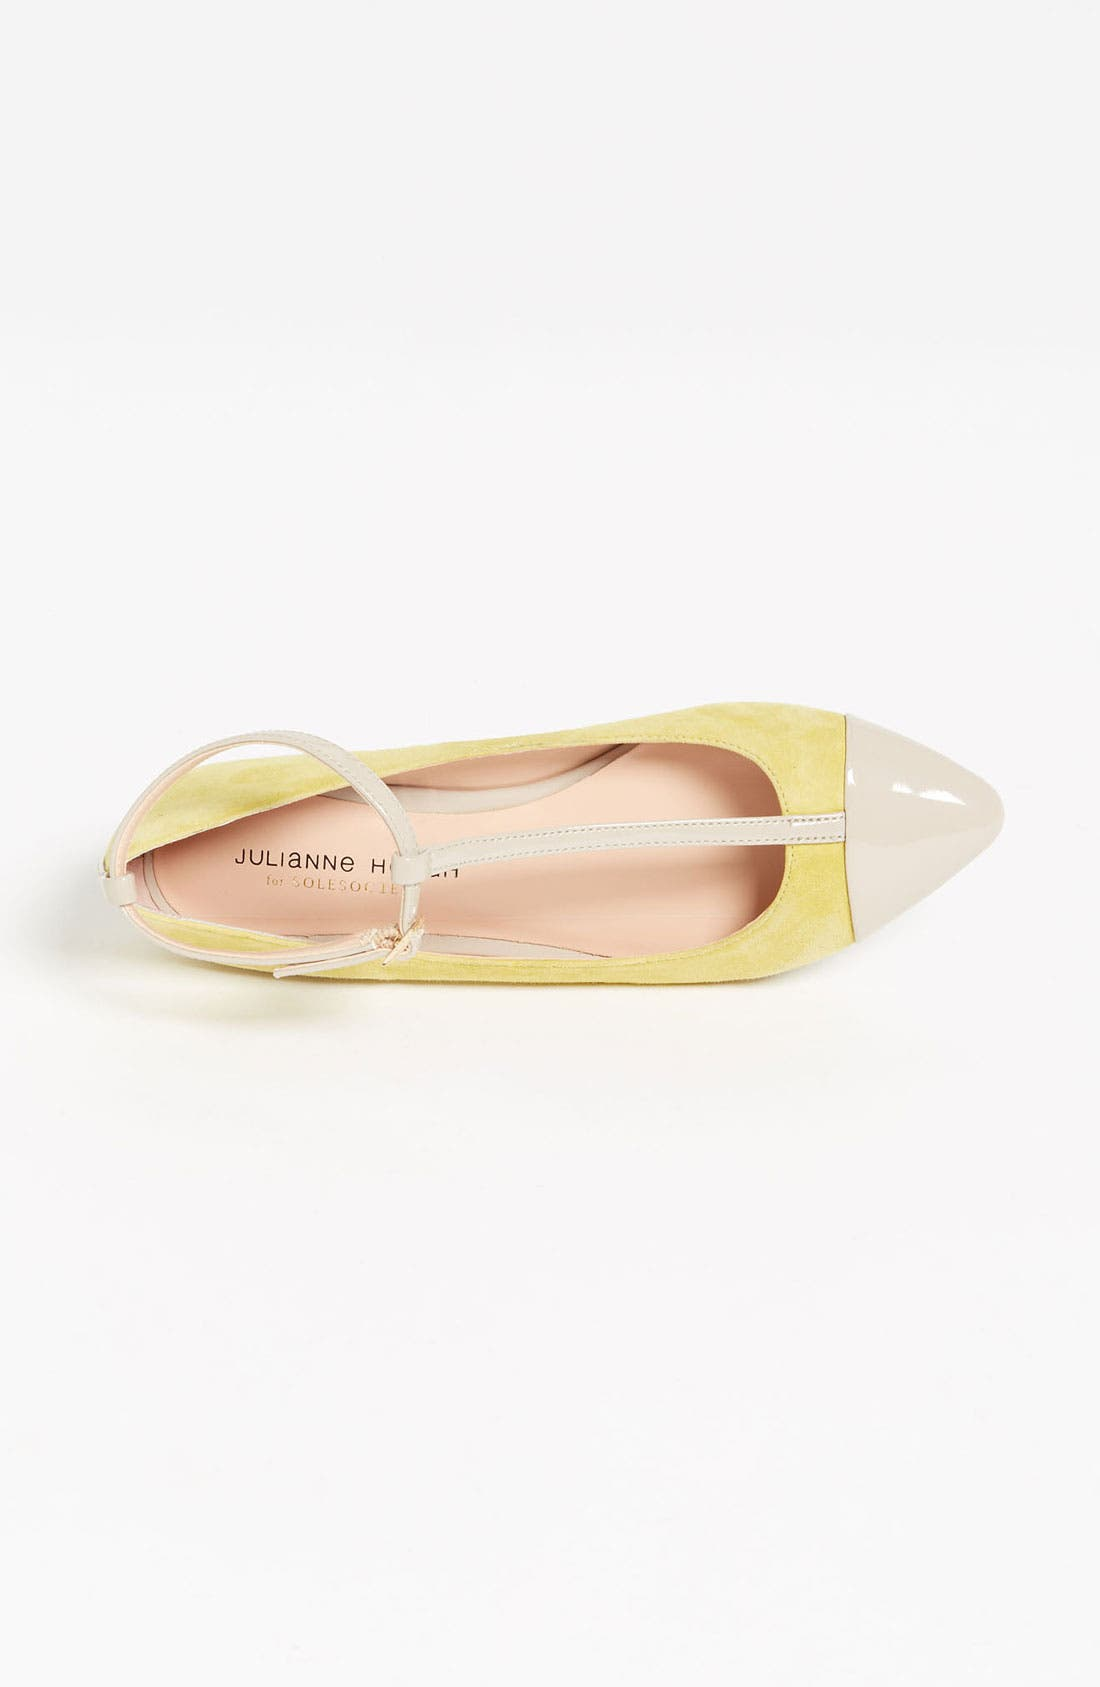 ,                             Julianne Hough for Sole Society 'Addy' Flat,                             Alternate thumbnail 32, color,                             330